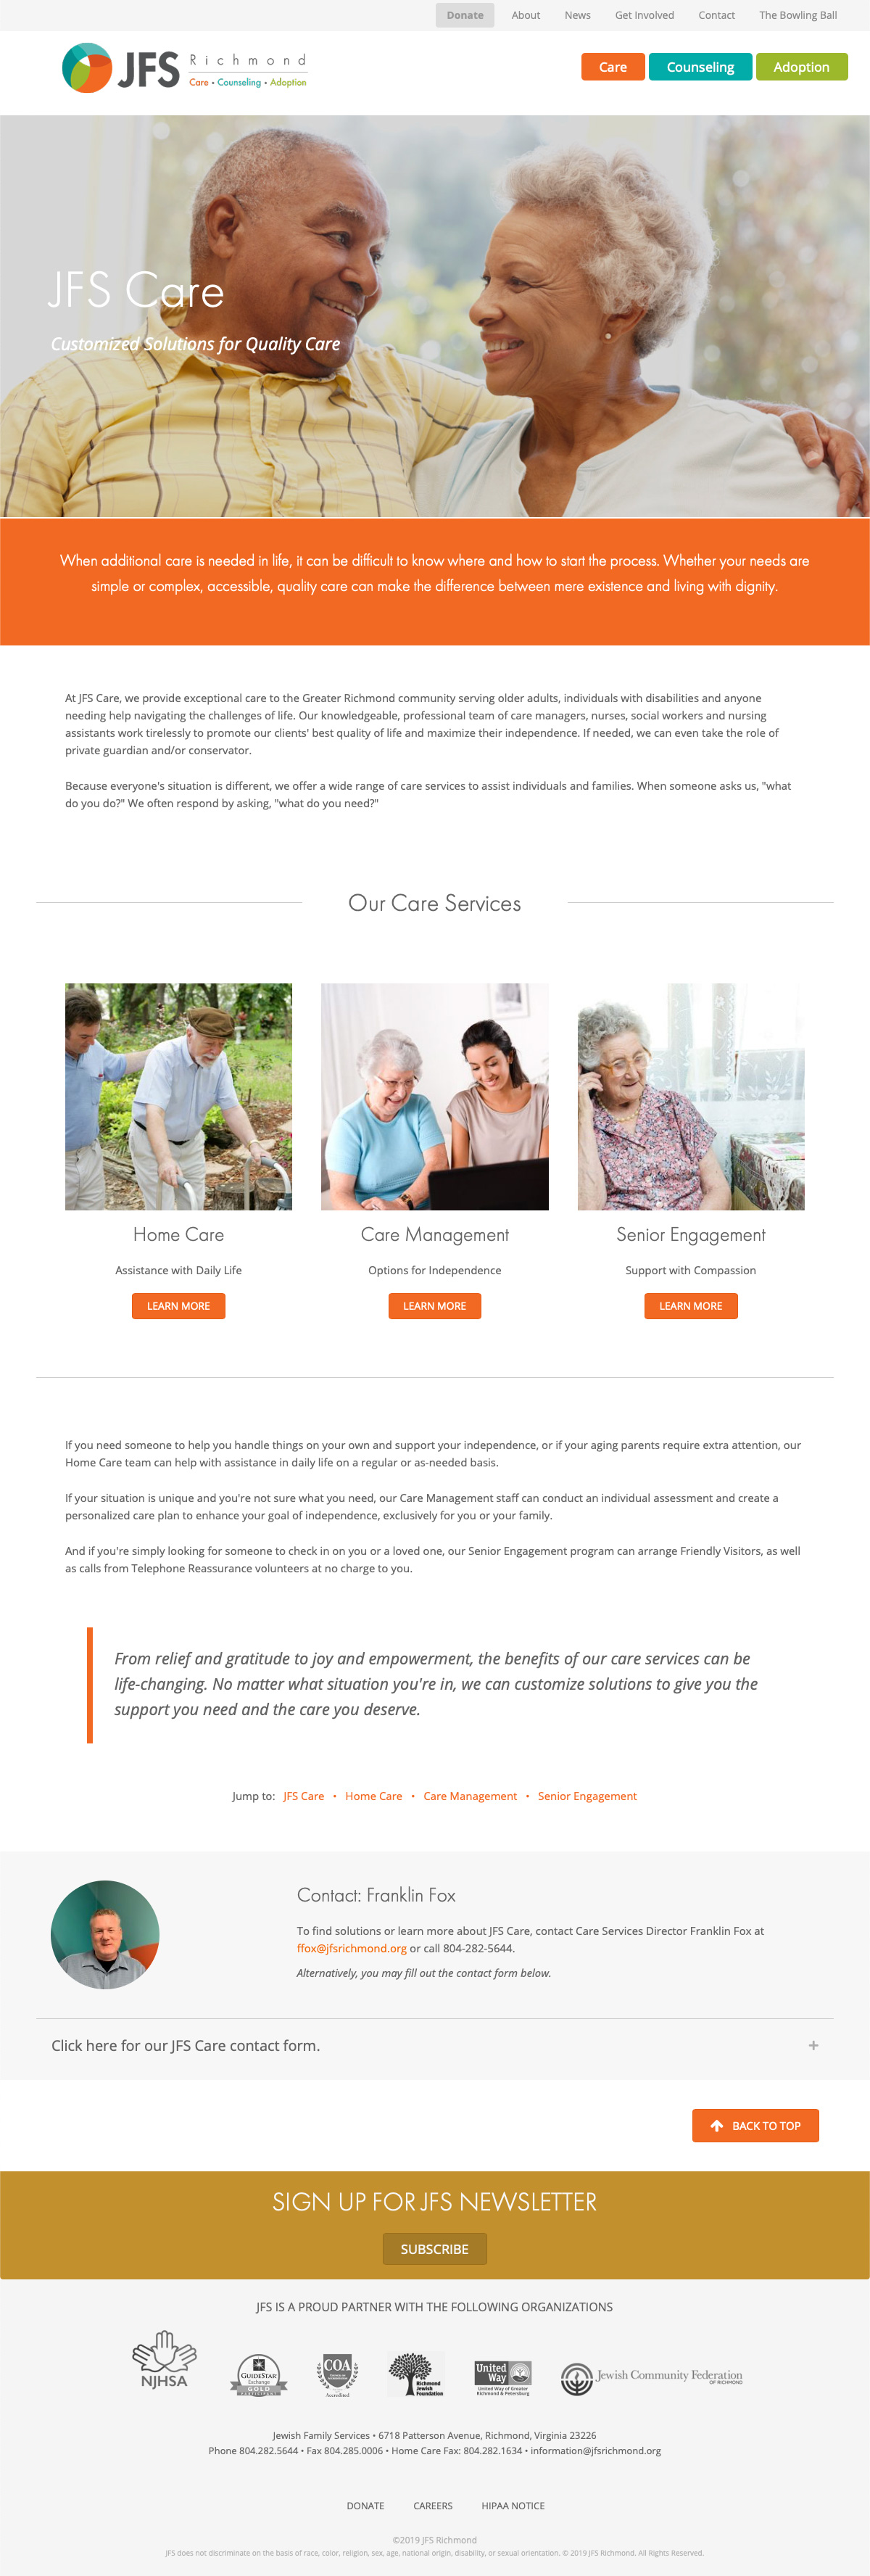 JFS_Web_Care